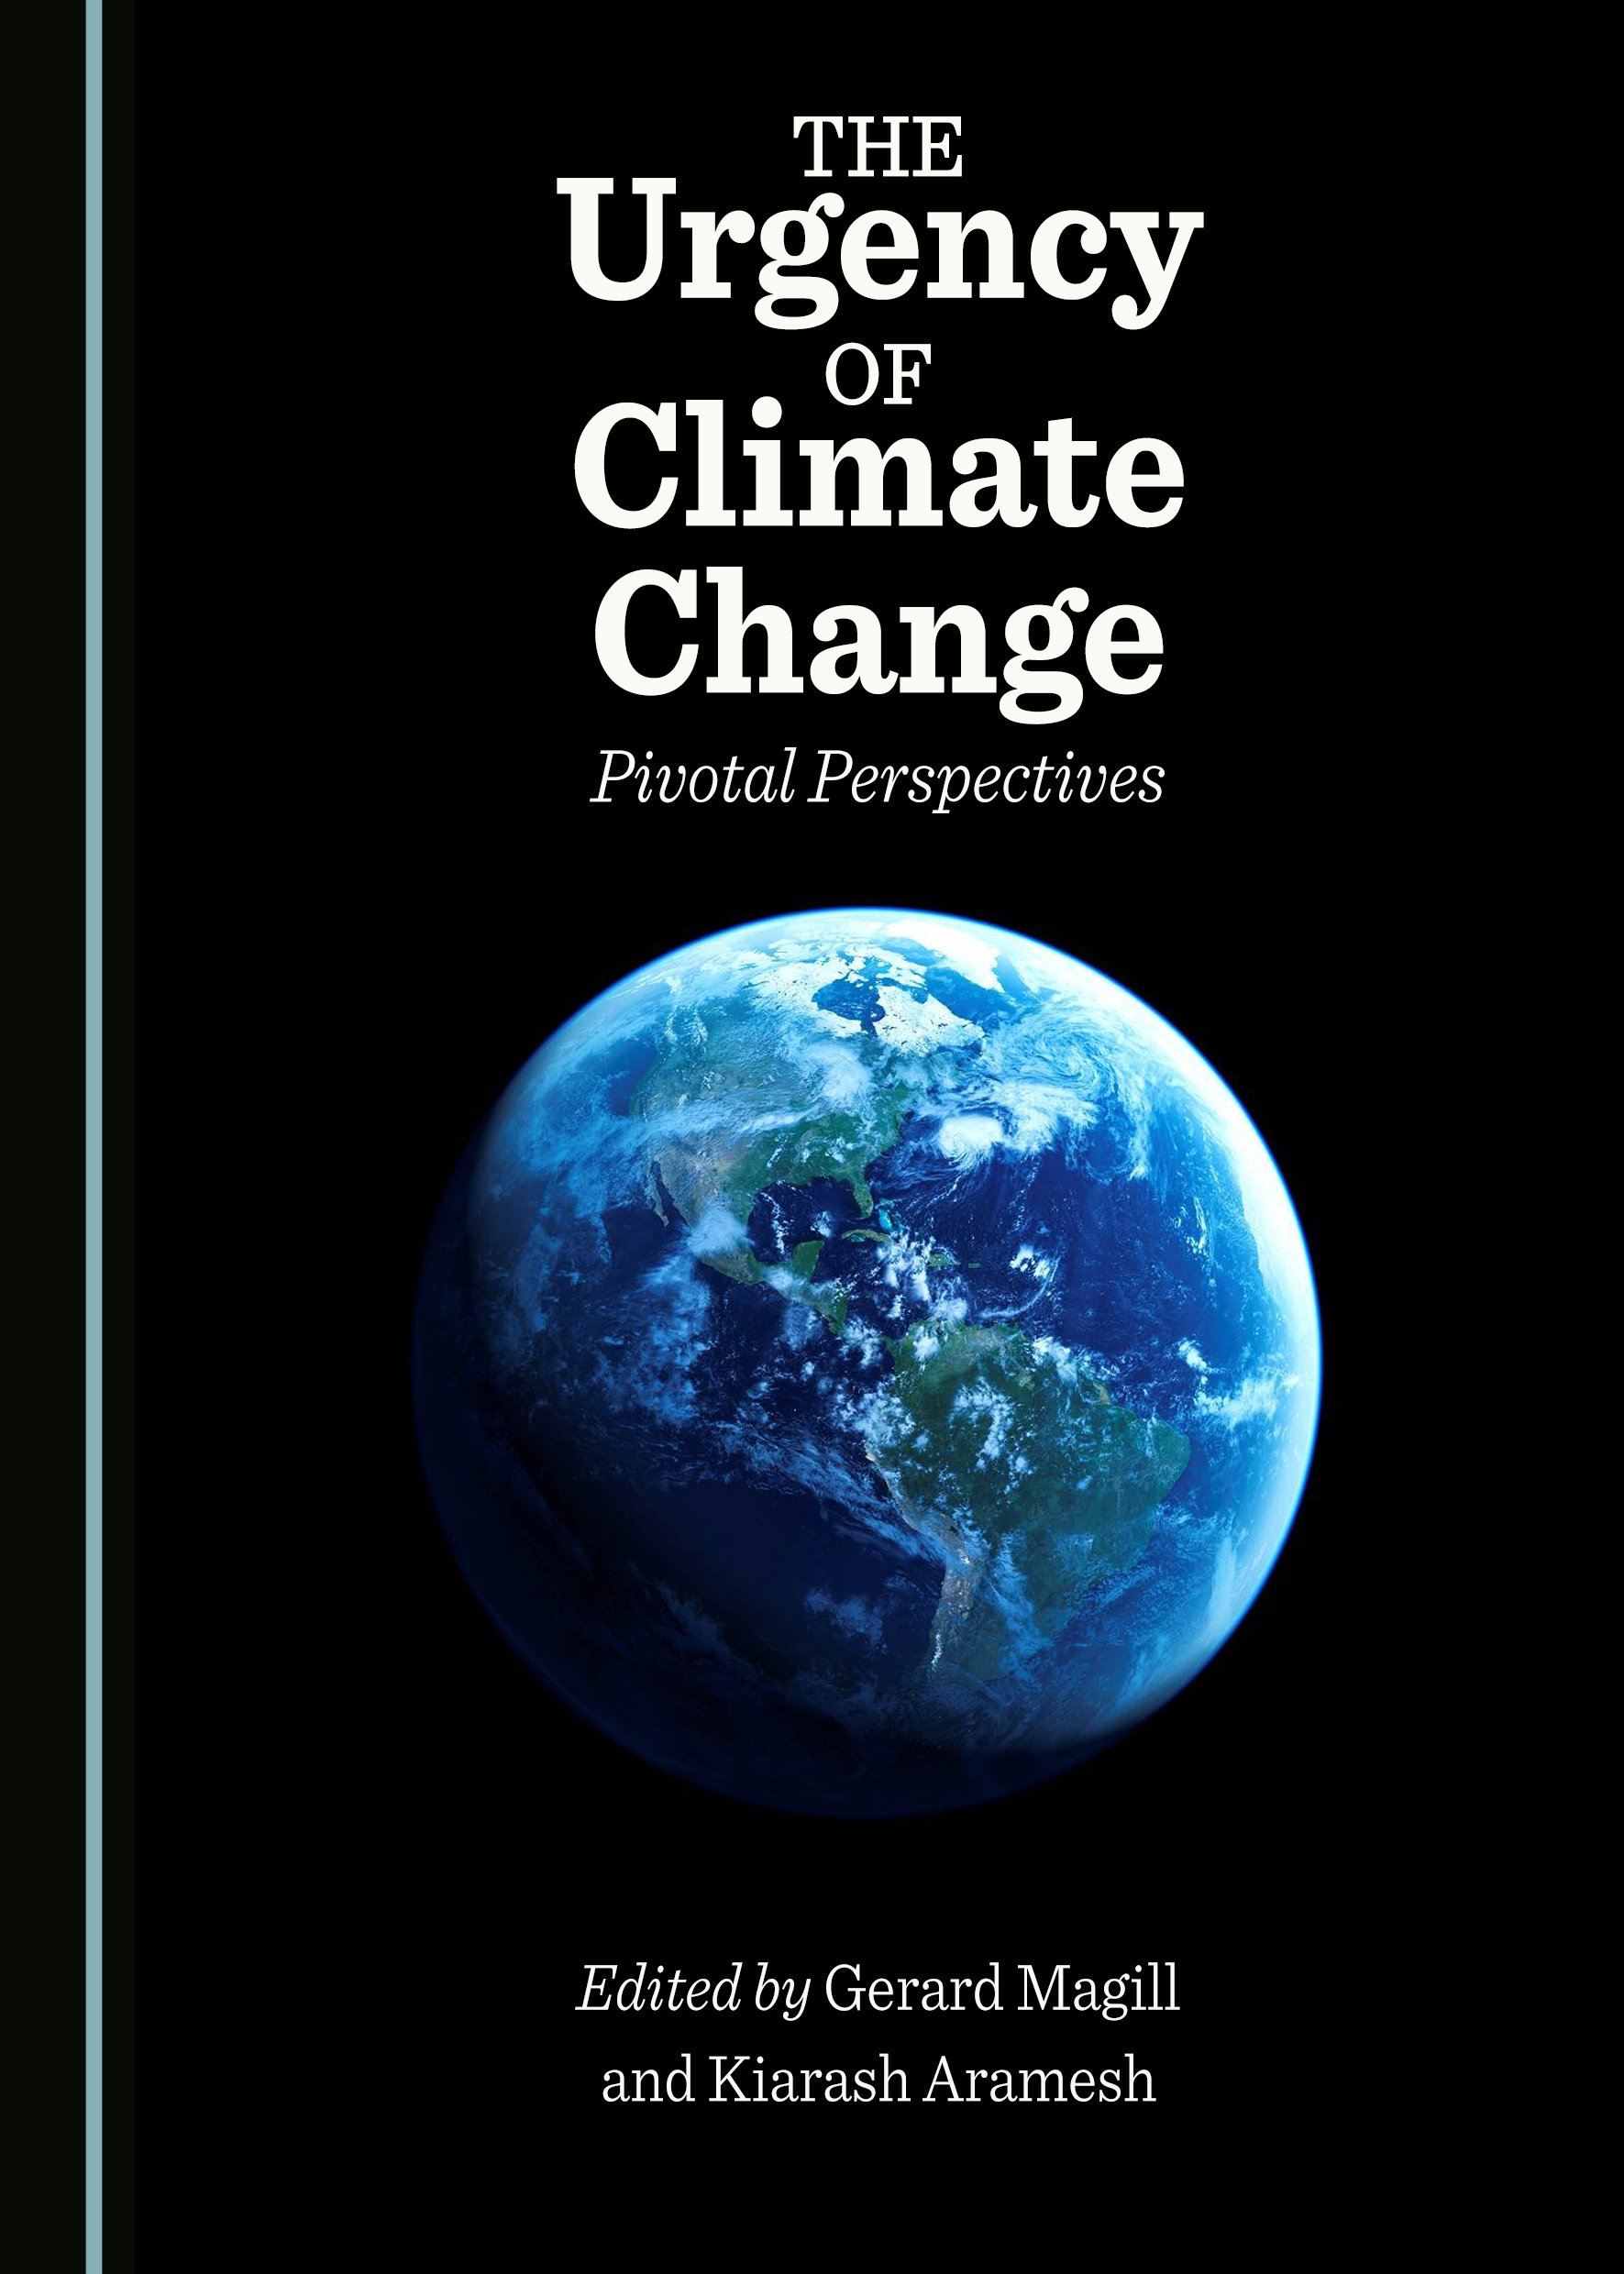 The Urgency of Climate Change: Pivotal Perspectives